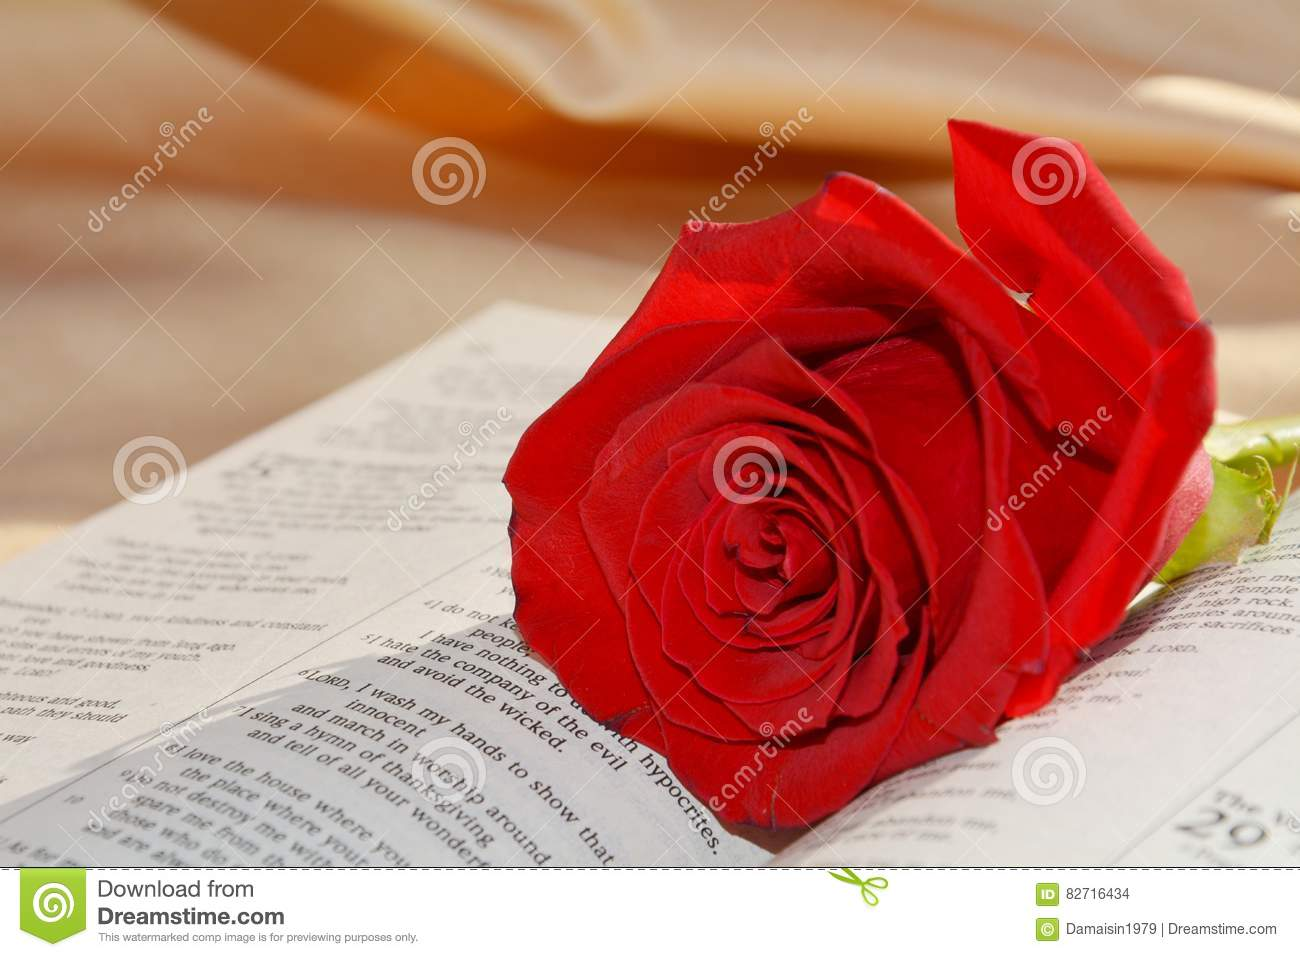 Rose And Bible Stock Photo Image Of Holy Lover Concept 82716434